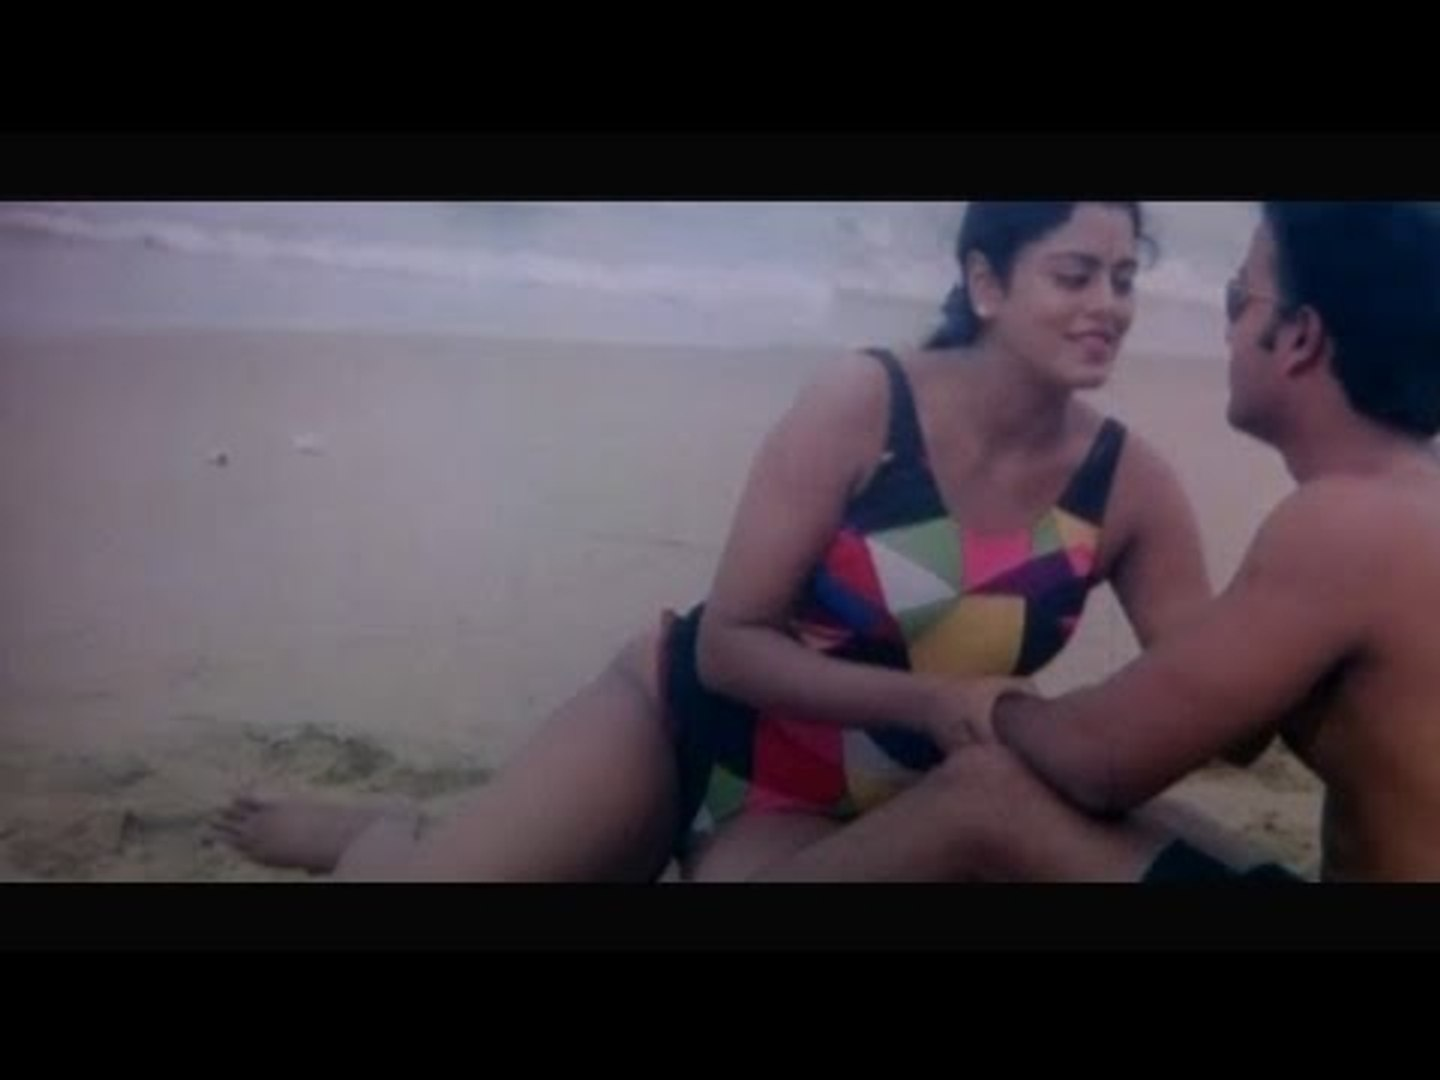 Tamil Hot Movie Full Movie New | Kadhal Poove | Tamil Movie Latest | Tamil Full Movie 2014